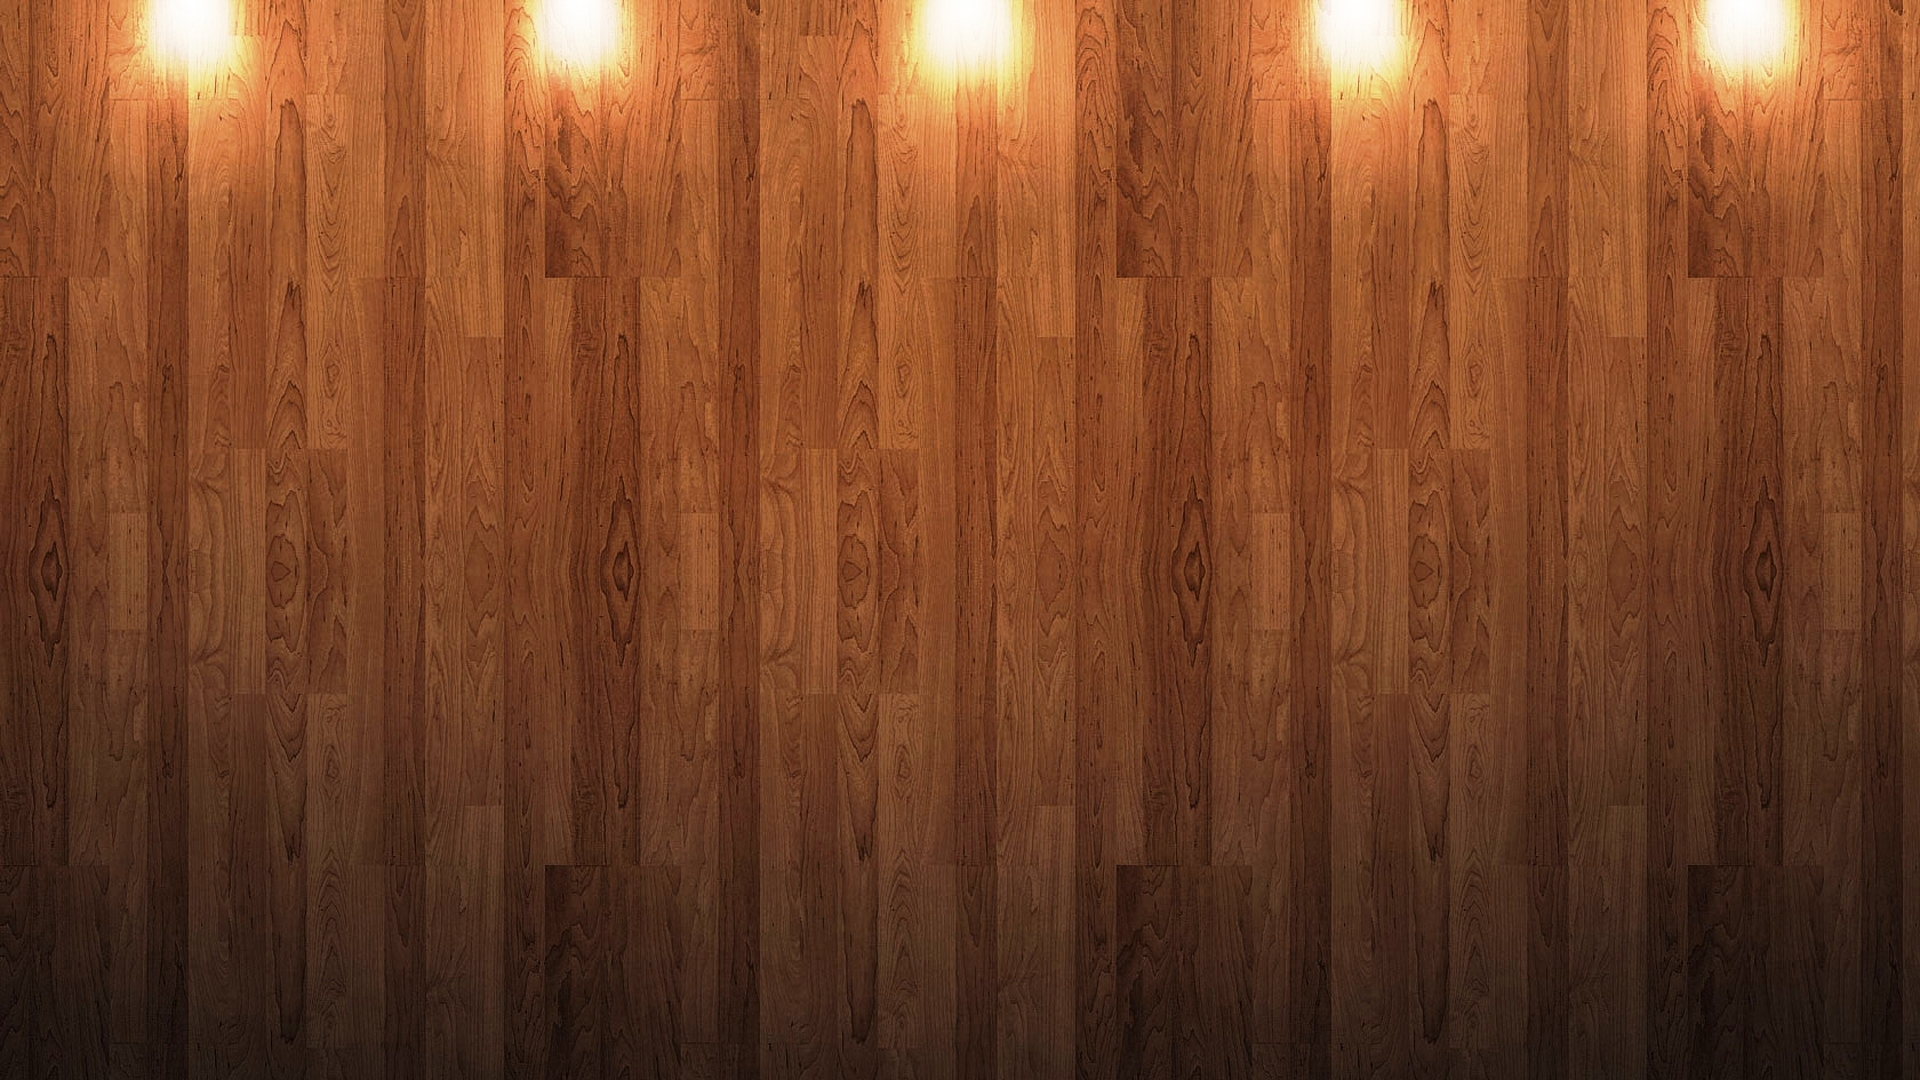 Pattern   Wood Wallpaper. Wood Full HD Wallpaper and Background   1920x1080   ID 366341